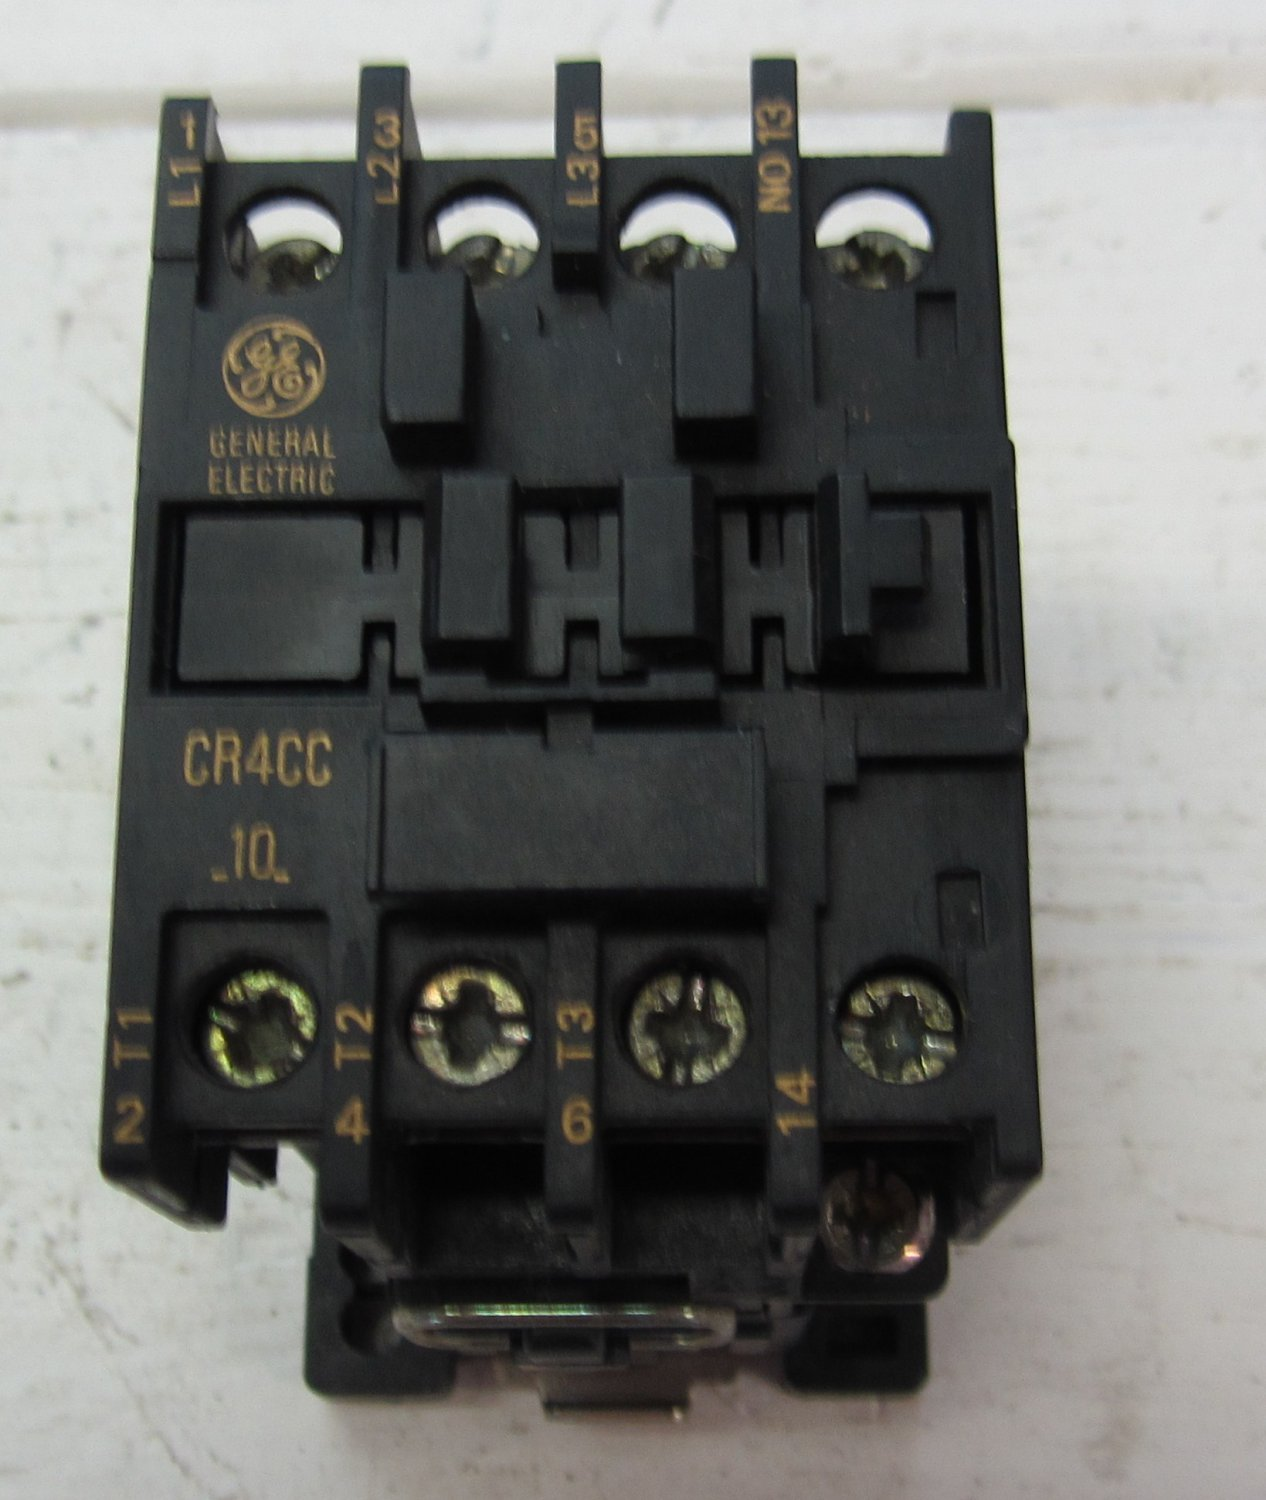 General electric cr4cc 10 cr4cc motor starter contactor for General electric motor starters